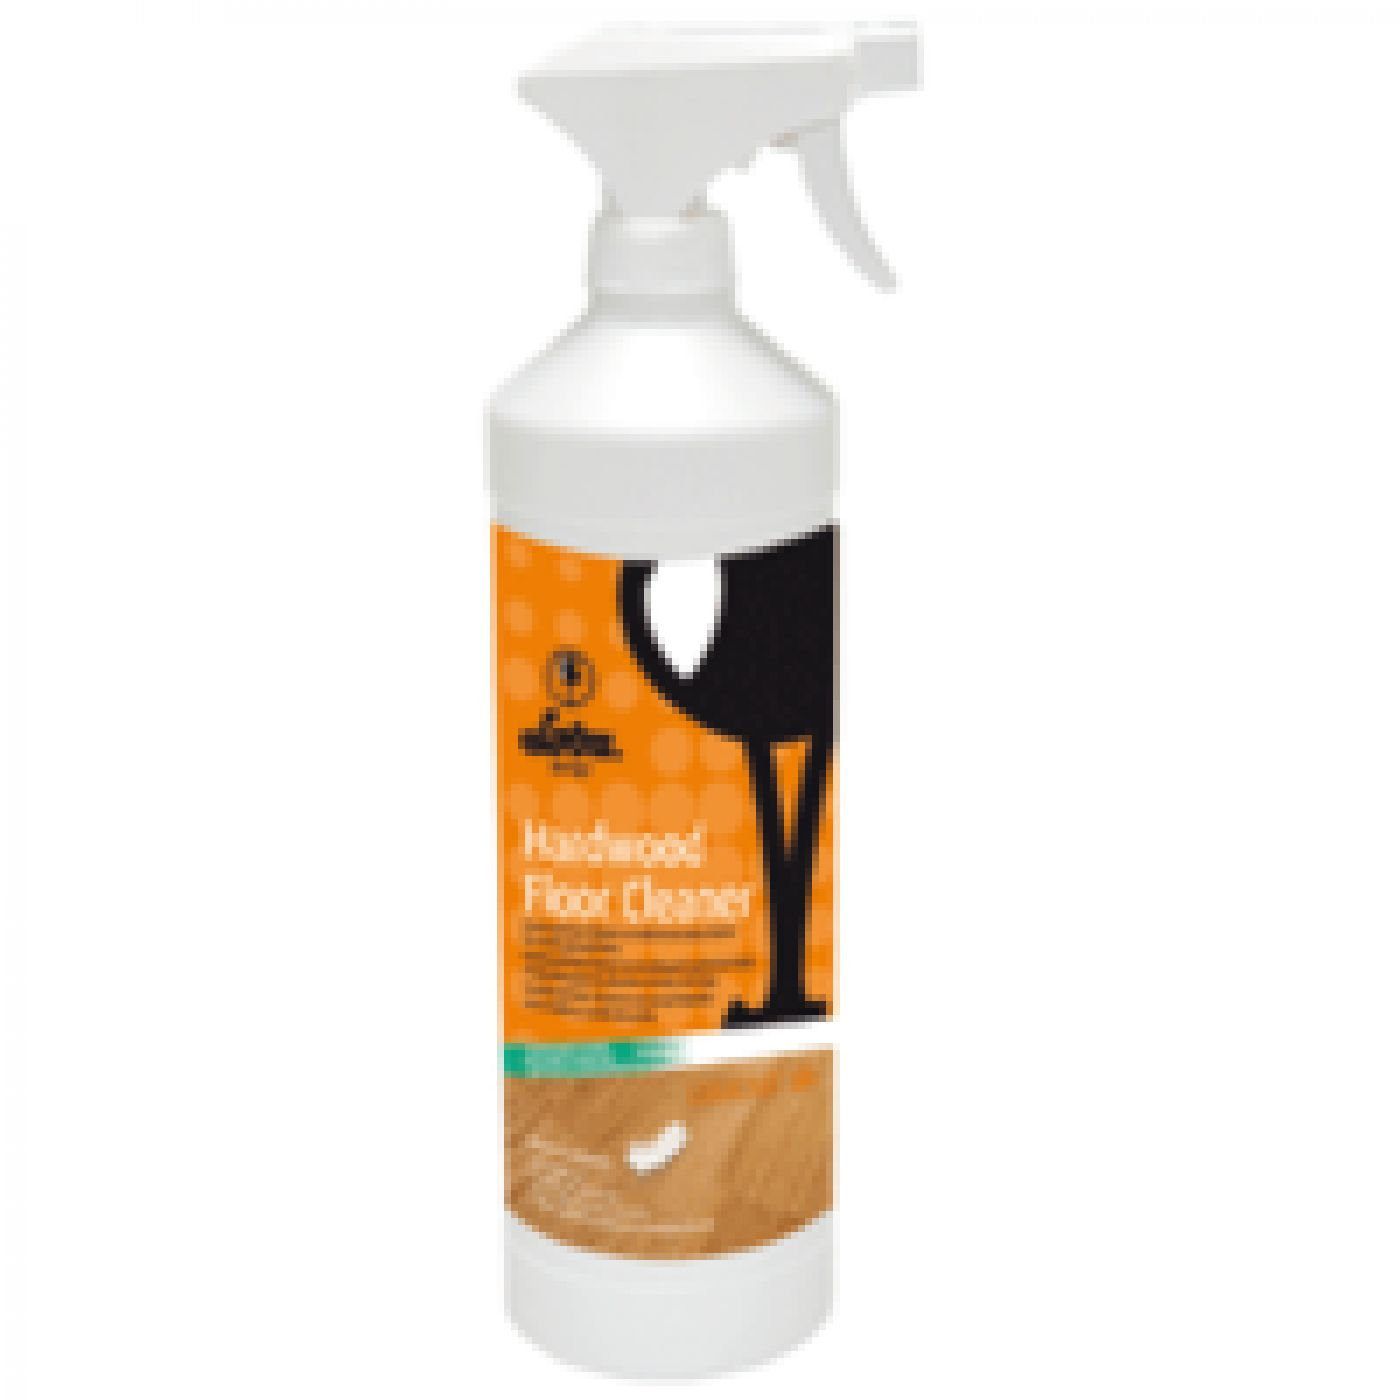 Loba hardwood floor cleaner rm wood floor supplies for Hardwood floor cleaner